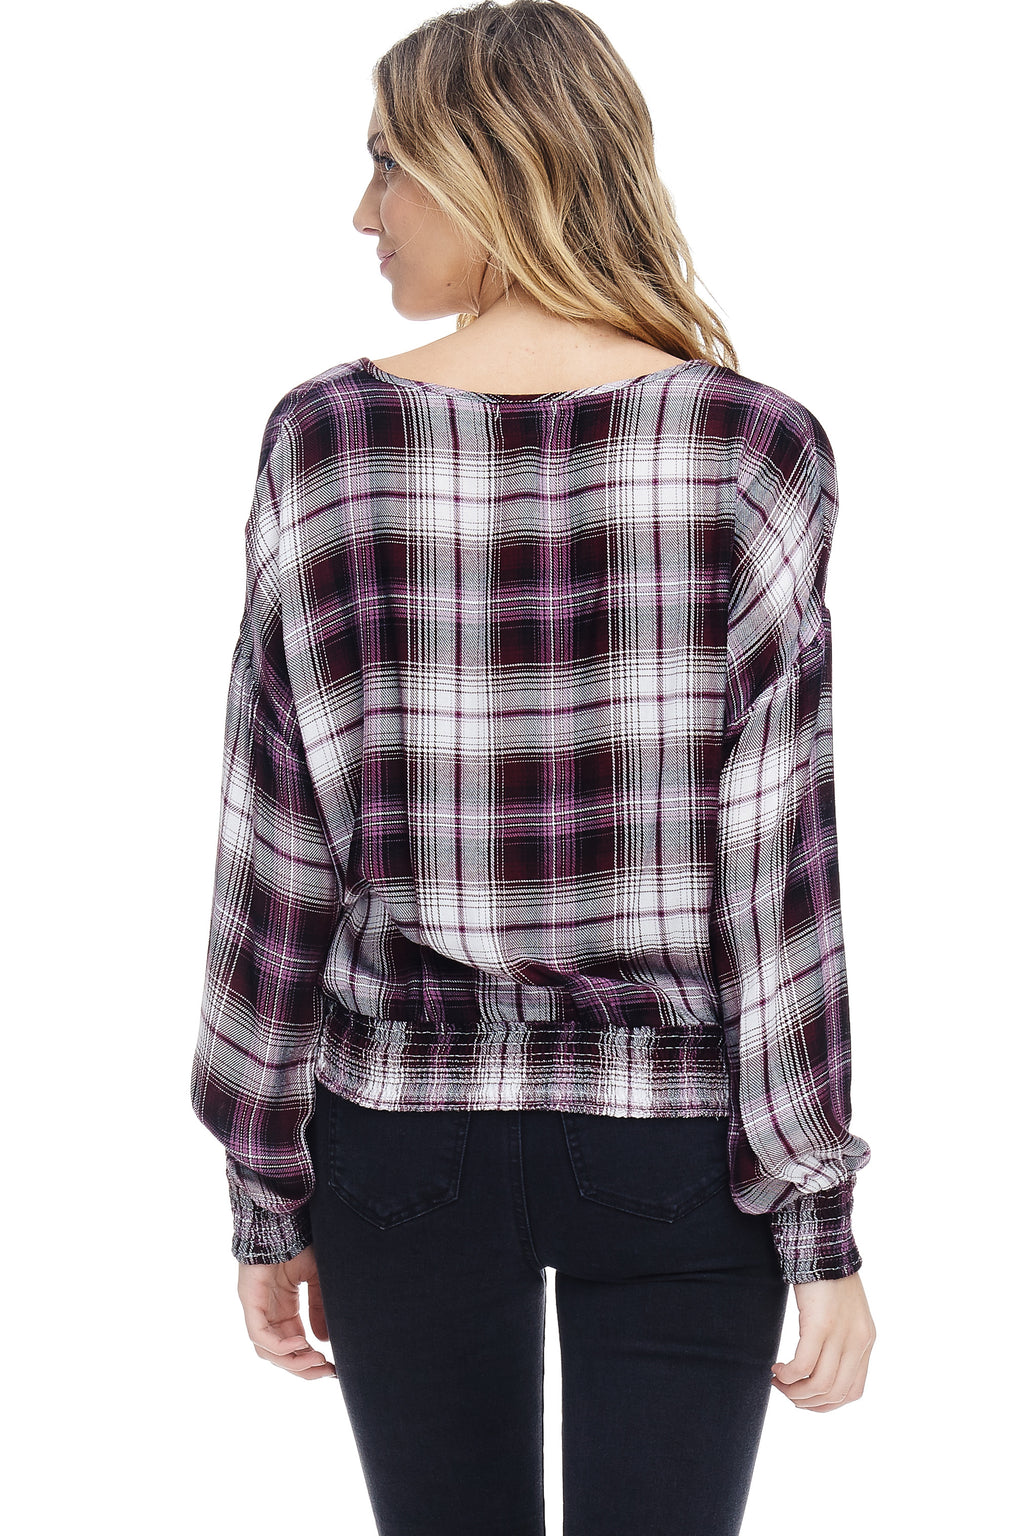 W18-122 Plaid Surplice Blouse